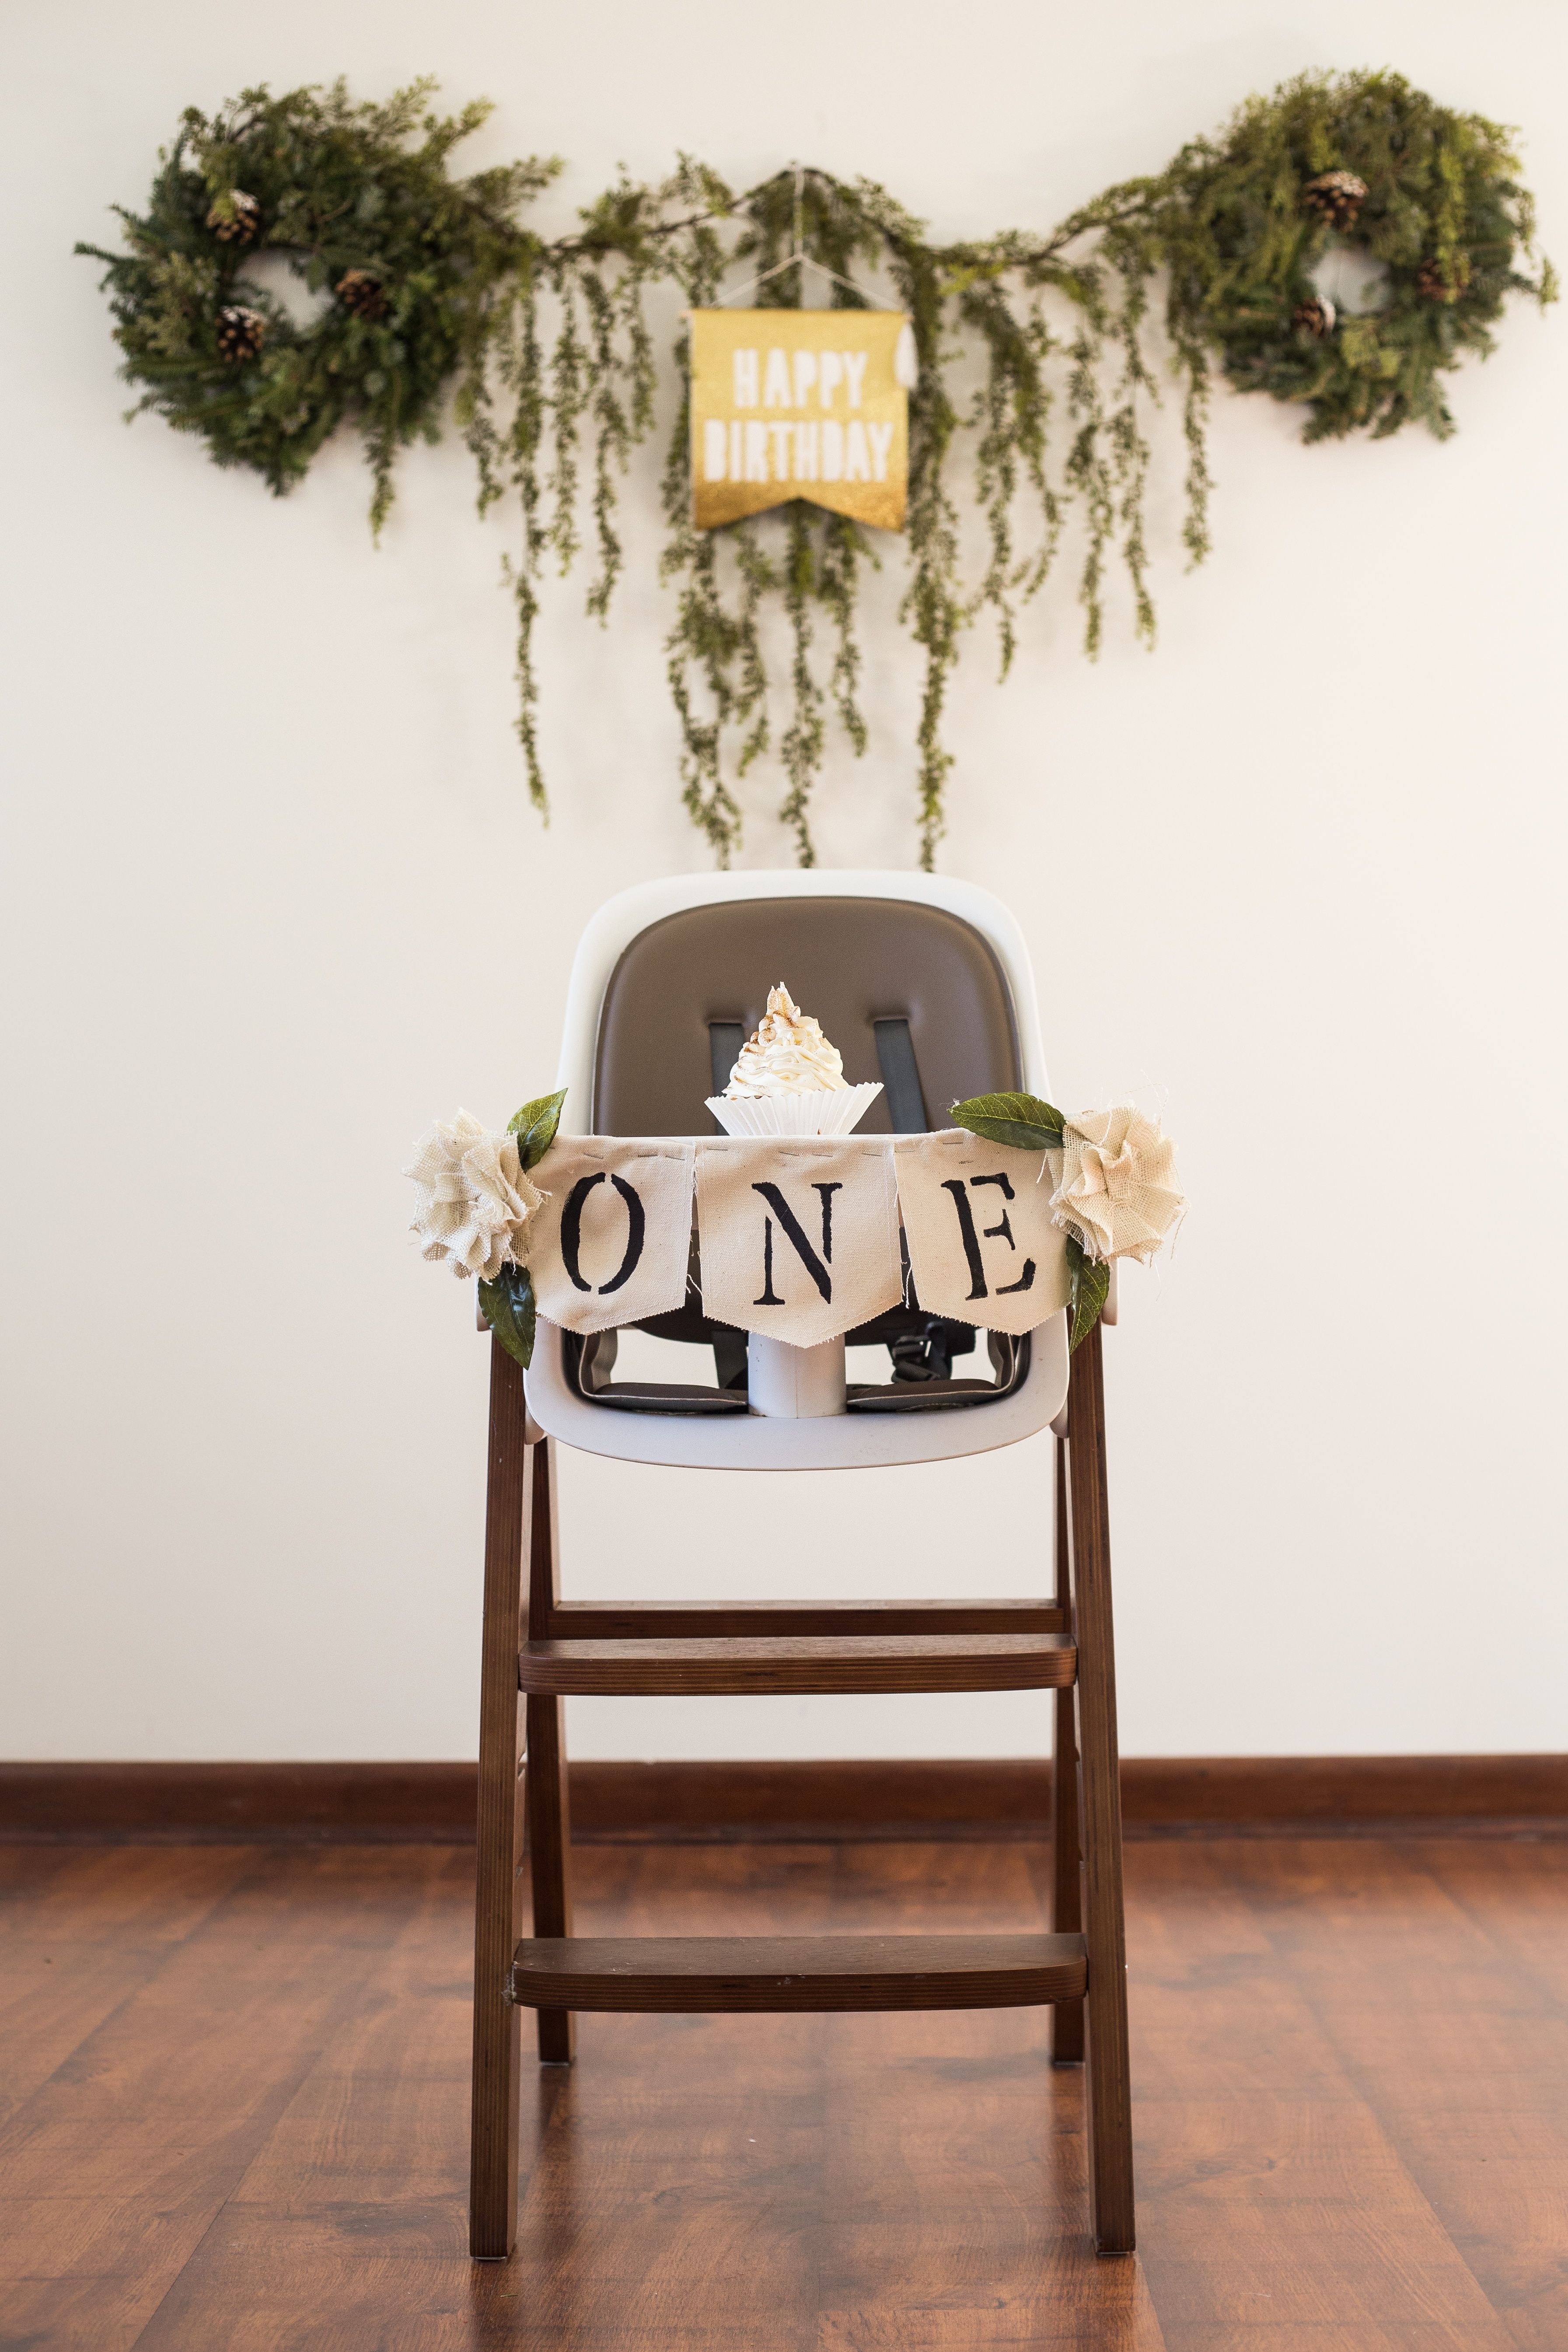 high chair decorations 1st birthday boy modern leather executive first party decor banner wall